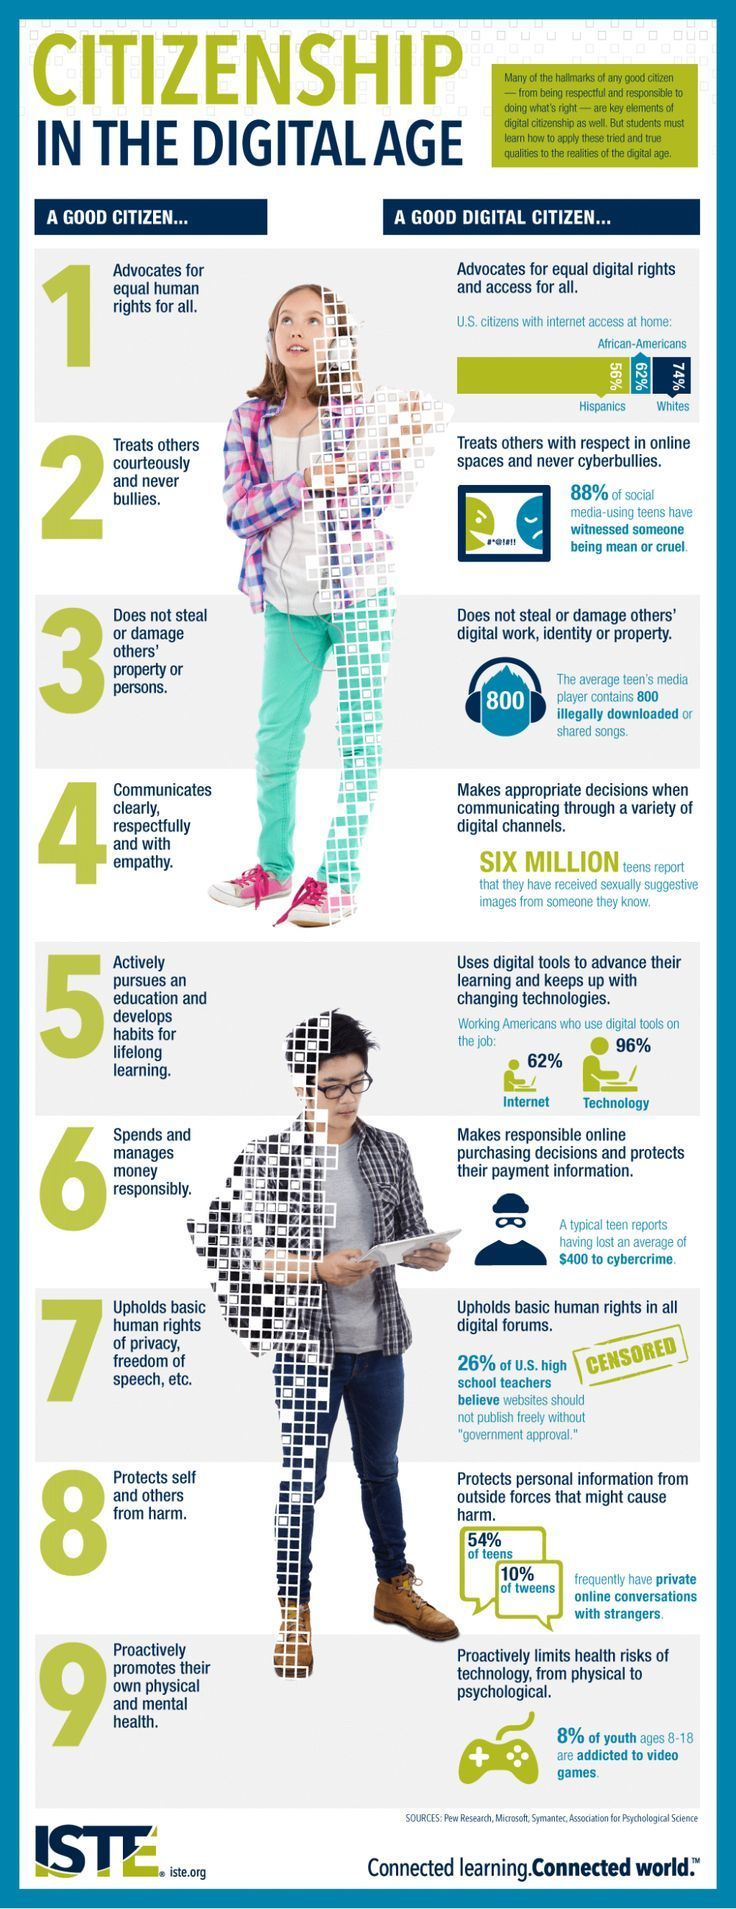 Being a good citizen and a good digital citizen go hand-in-hand. Image via @istepinterest